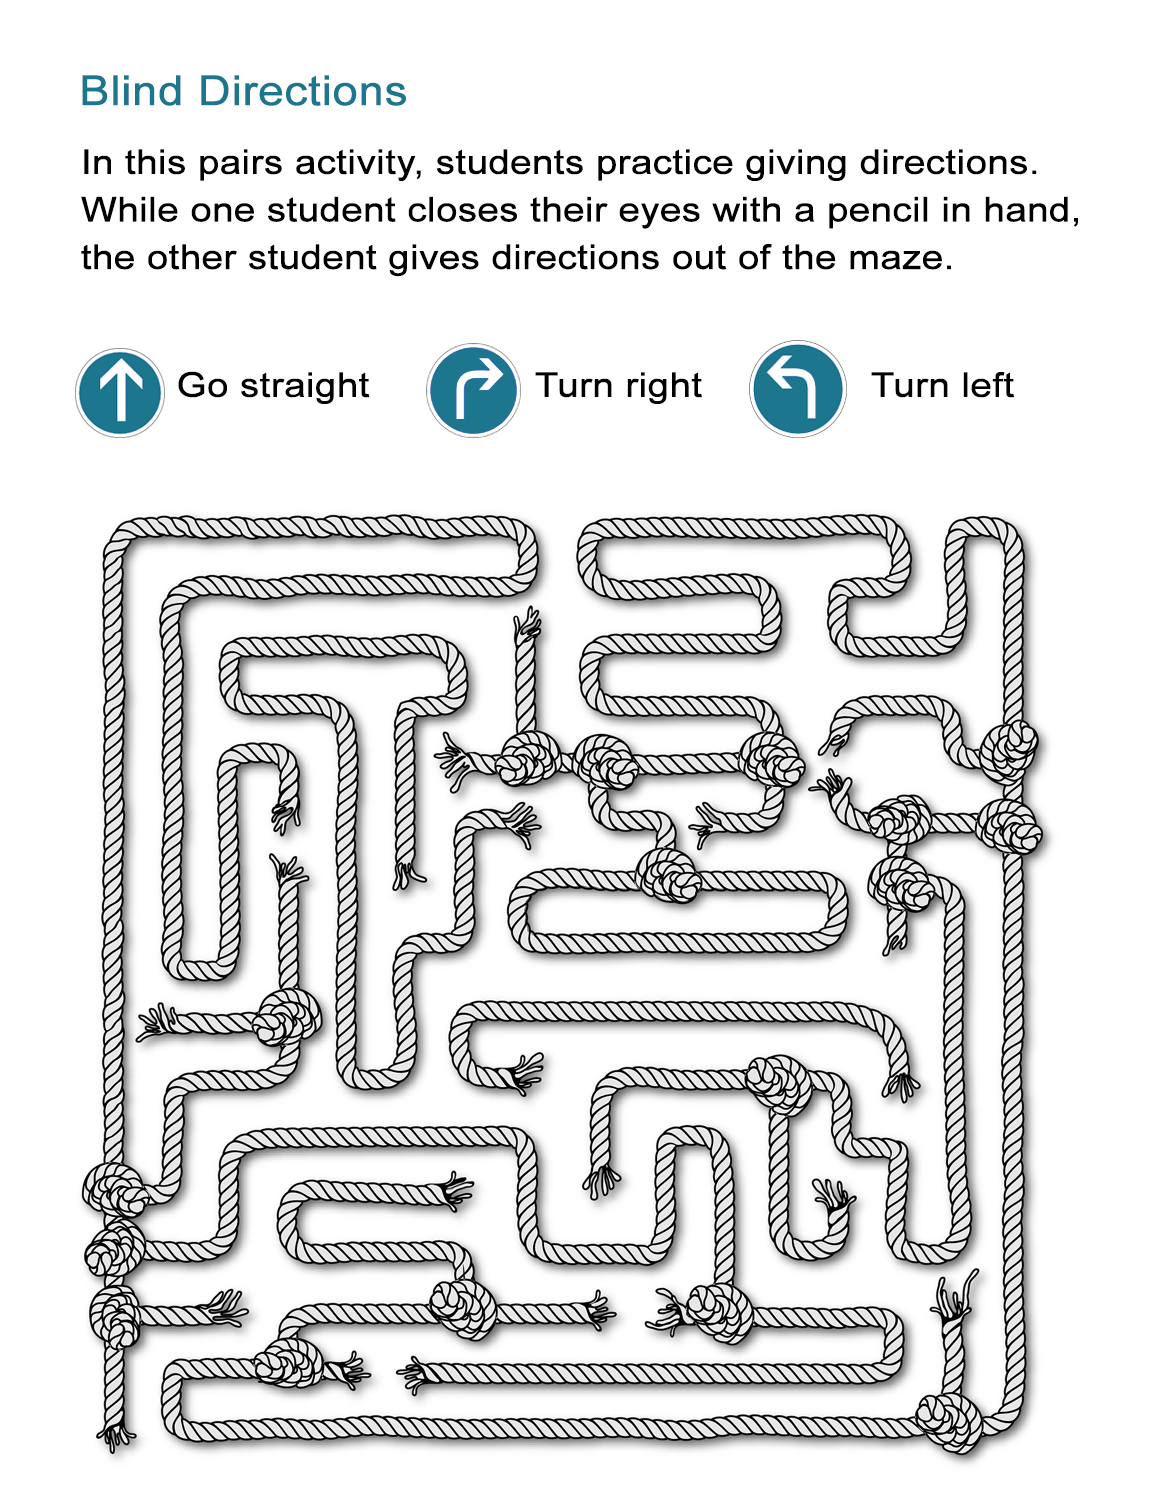 Maze Directions Worksheet: Can You Advance Through the Maze? - All ESL